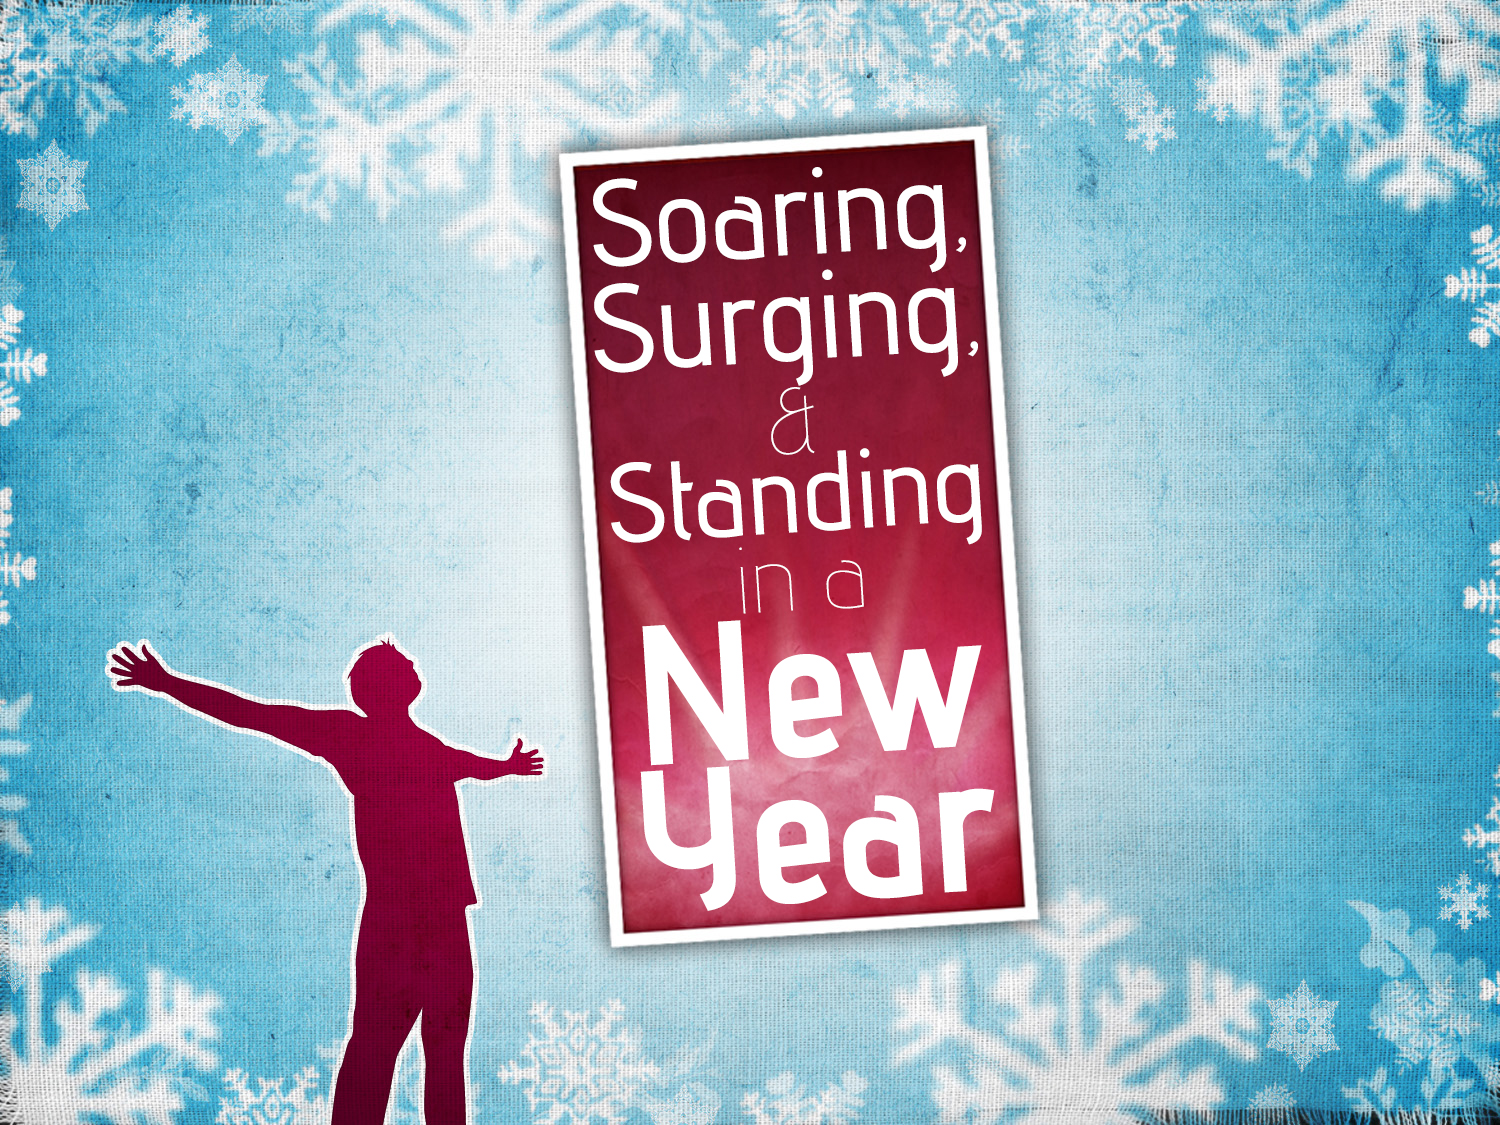 Soaring-Surging-Standing-in-a-New-Year_t